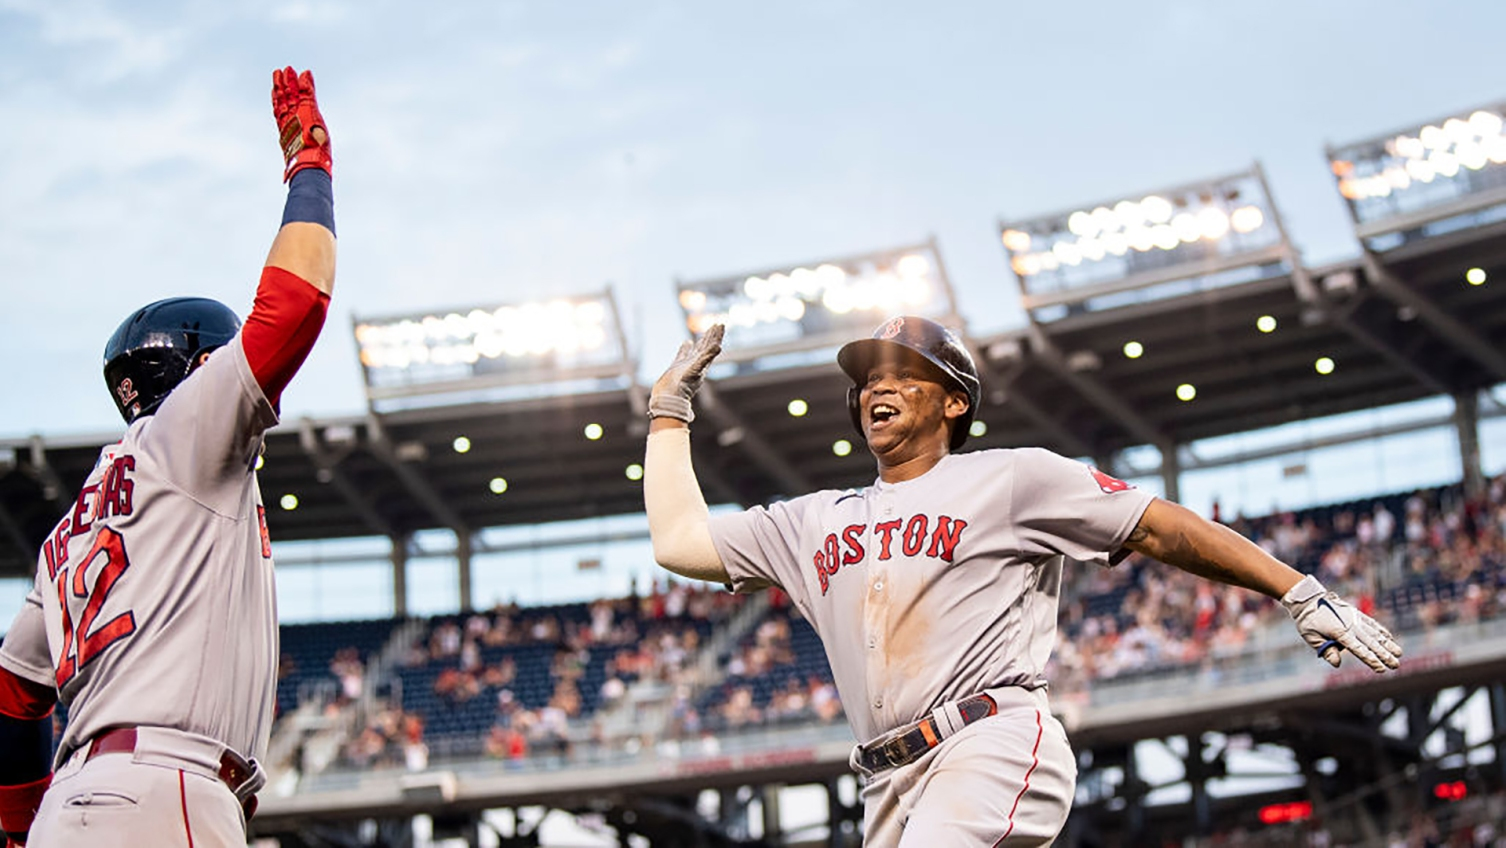 Yankees-Red Sox rivalry gets another wild chapter